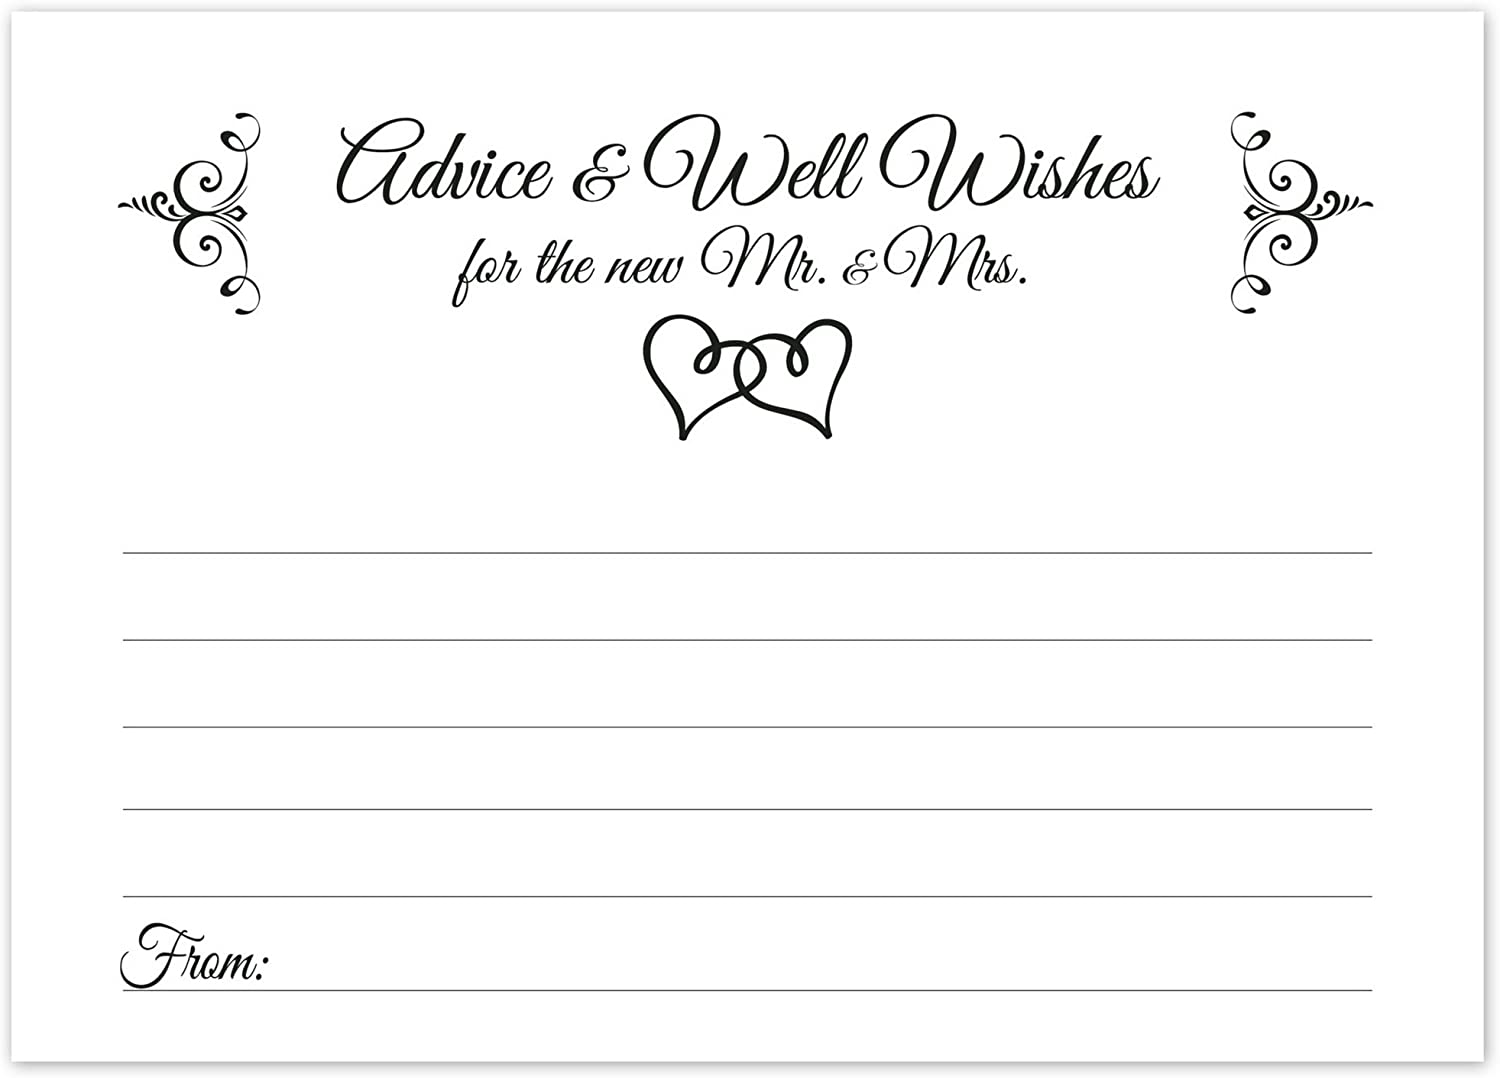 Wishes for the Happy Couple Cards Unique Bridal Shower Activity Game or Wedding Guest Book Alternative Black and White